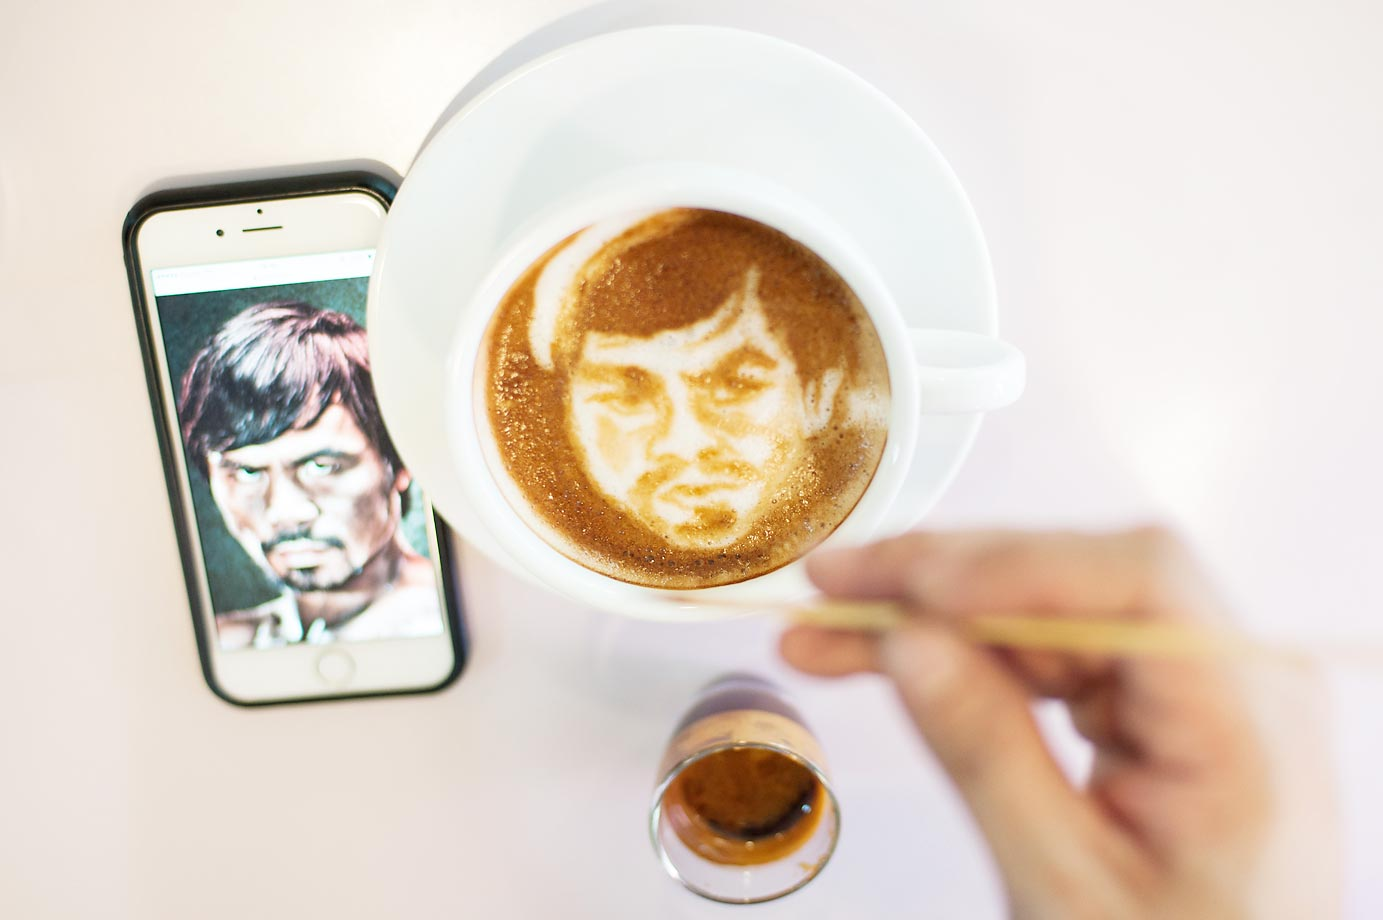 Filipino graphic artist Zach Yonzon sketches the face of Manny Pacquiao in the milk foam of a cup of coffee.